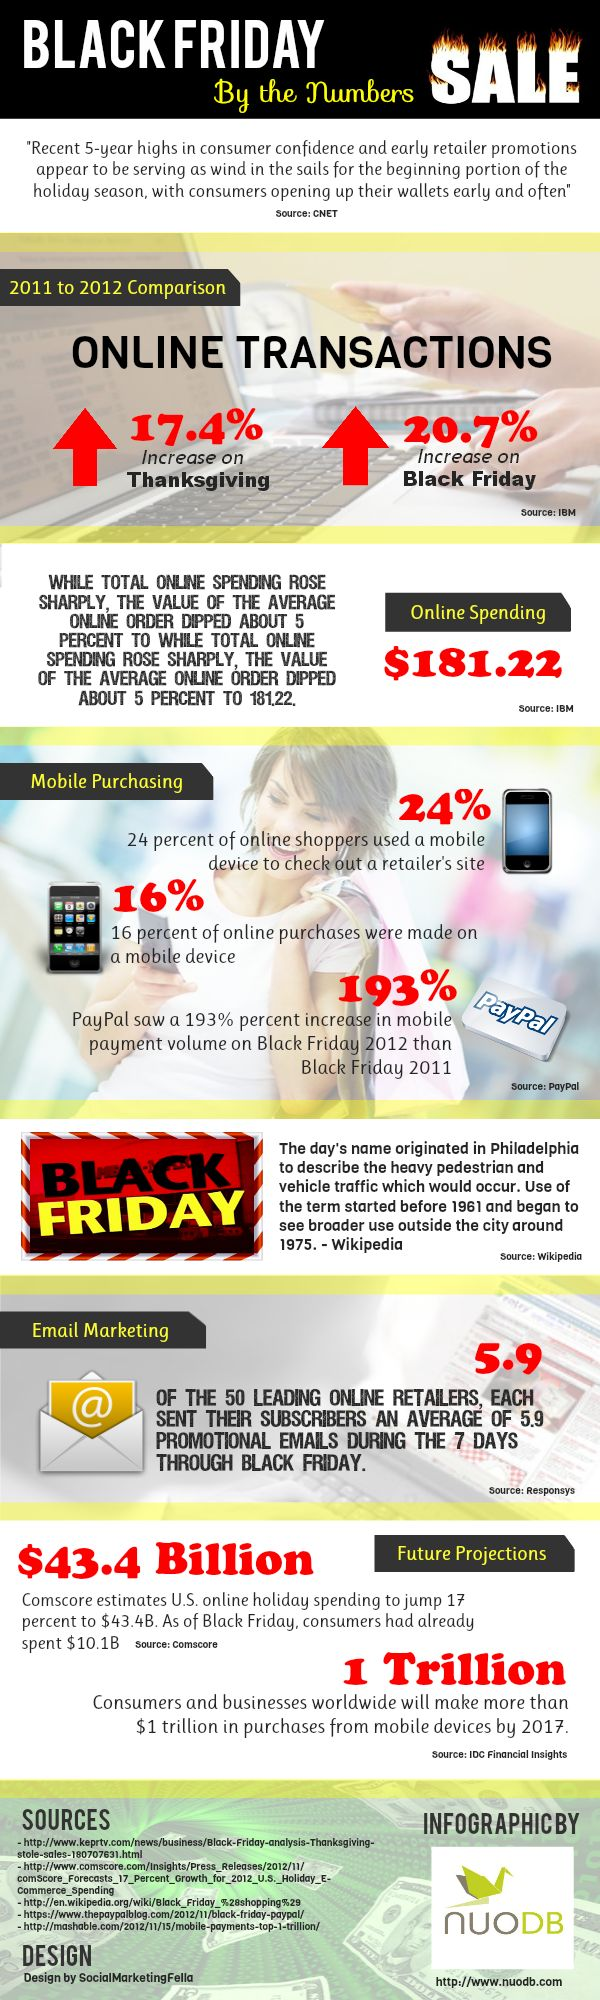 Black Friday Aftermath – By the Numbers [Interactive Infographic] | Business 2 Community